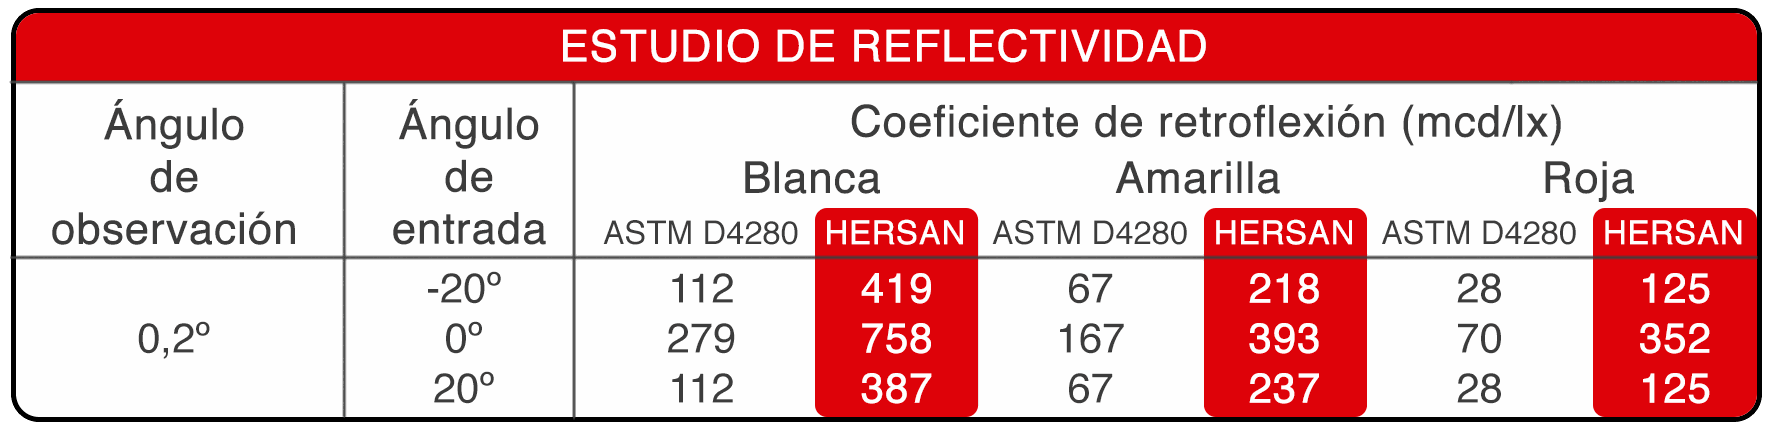 tabla de reflectividad